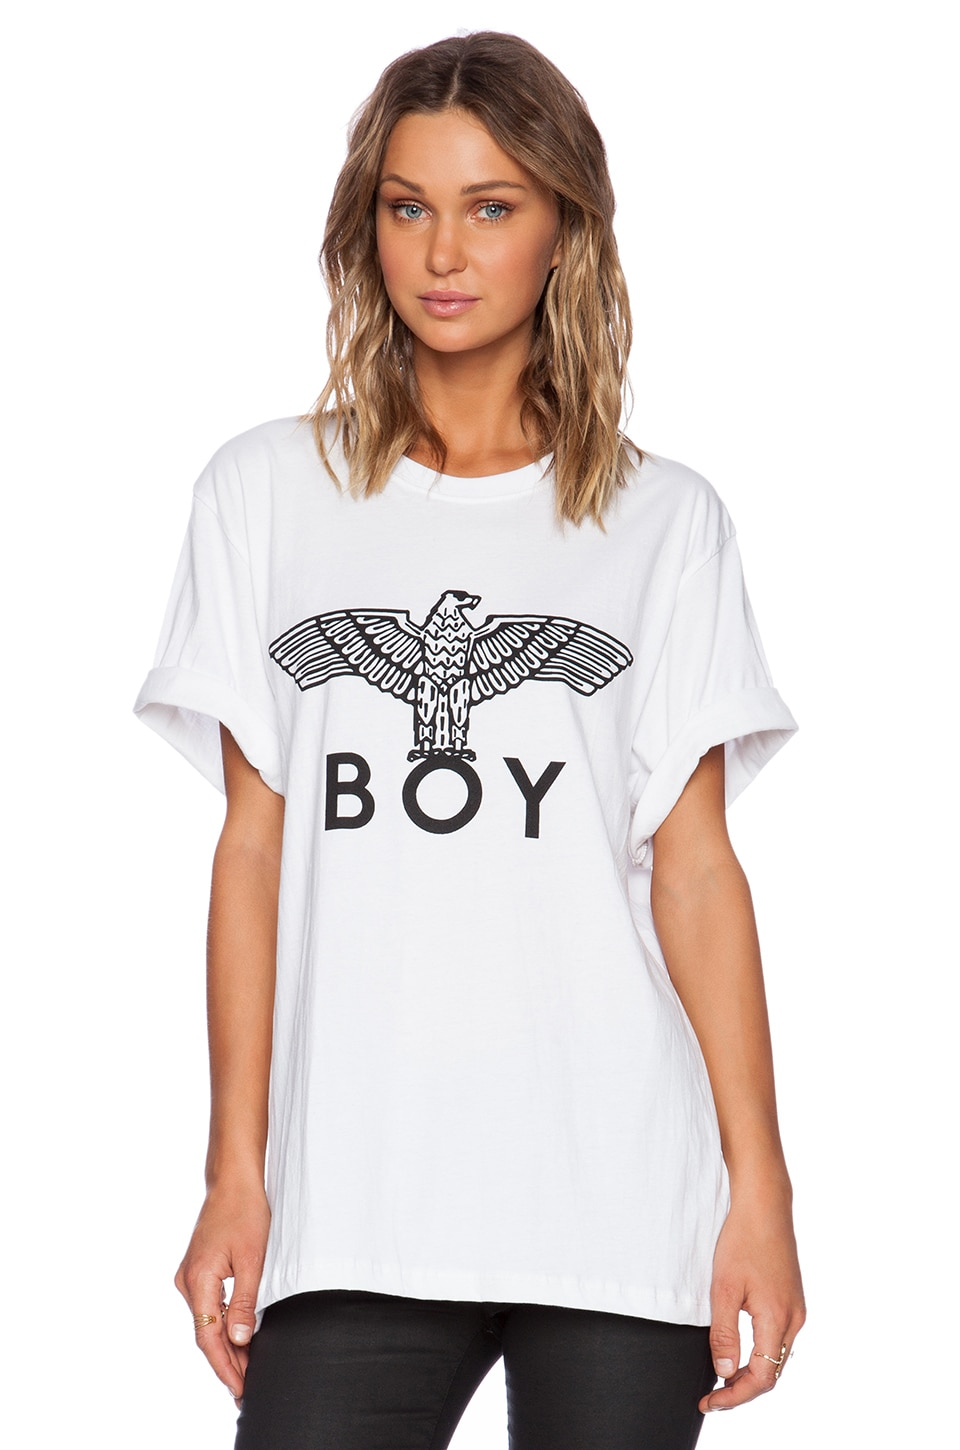 BOY London Eagle BOY Tee in White